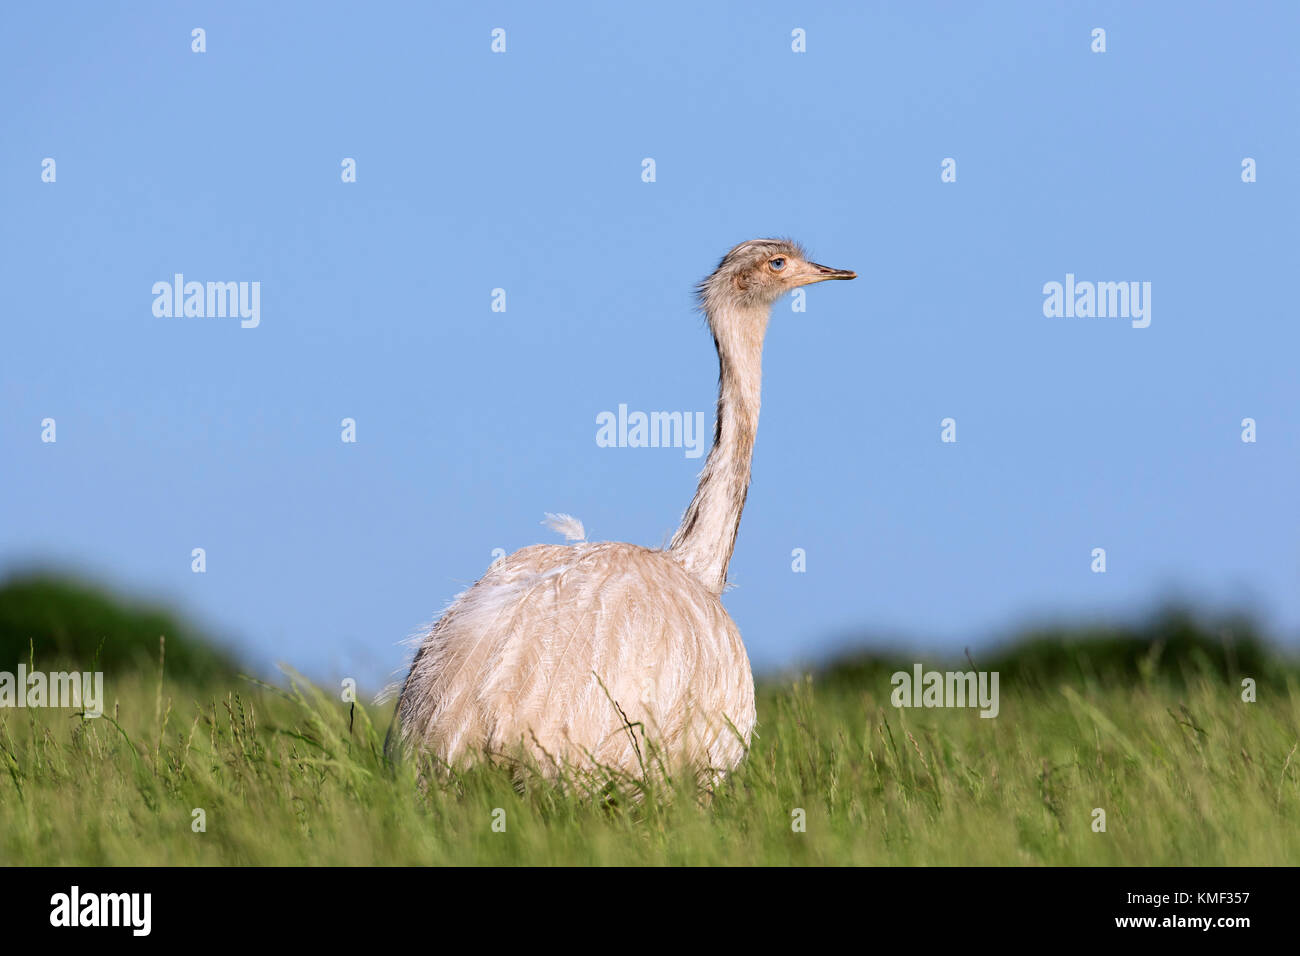 White greater rhea / American rhea / ñandú (Rhea americana) foraging in farmland, invasive species in - Stock Image